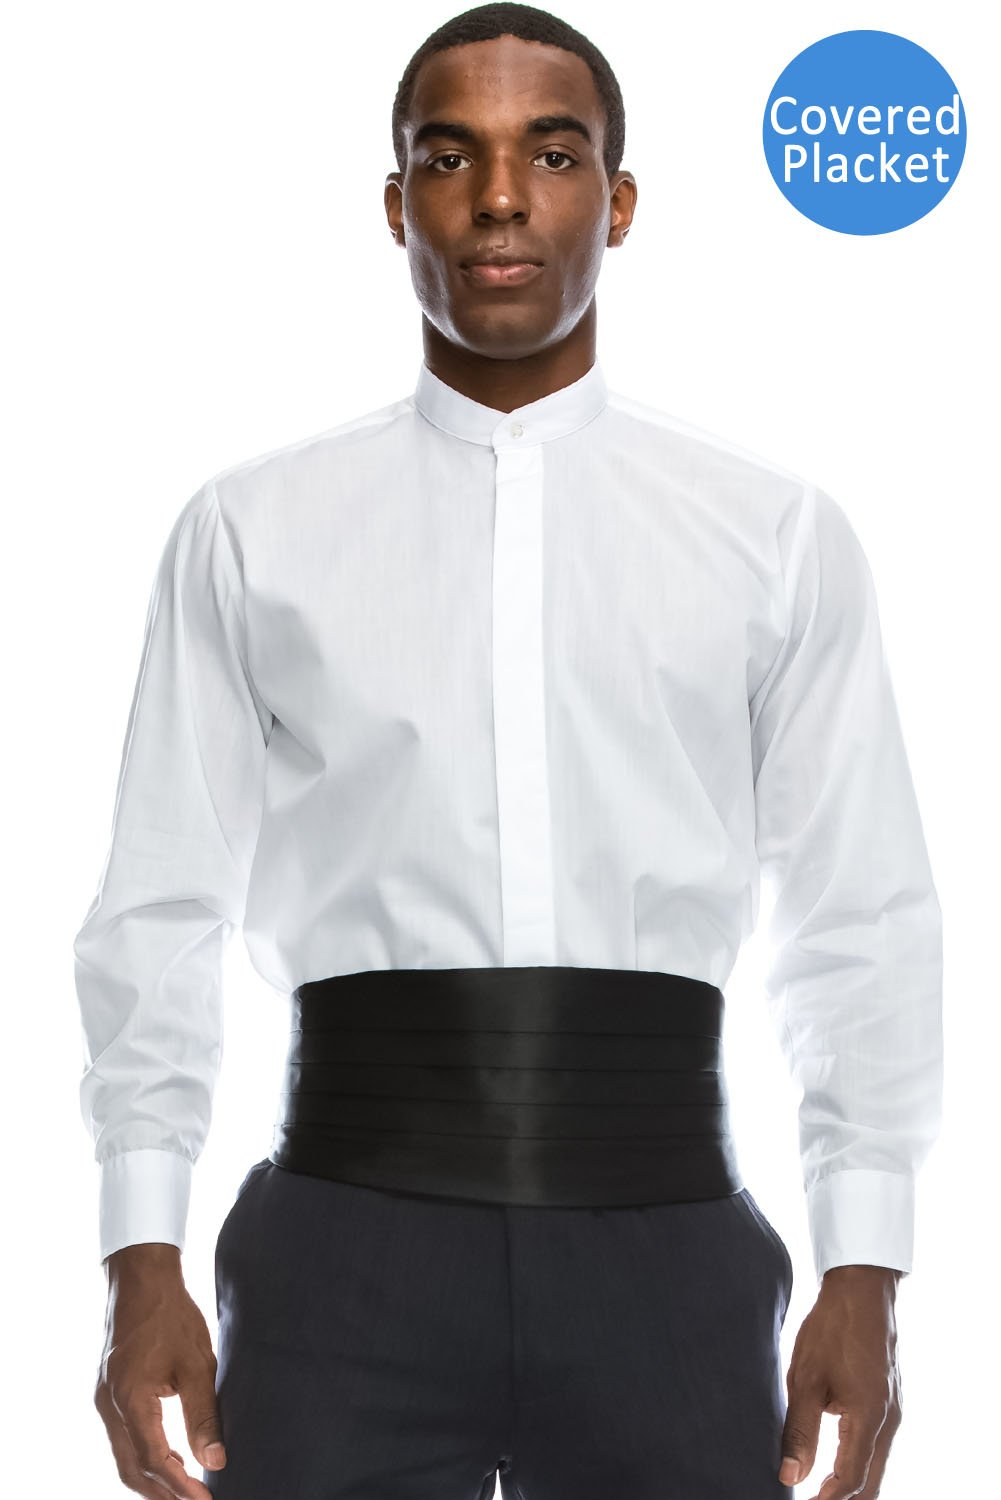 JC DISTRO Banded Collar Formal Dress Shirt Non-Pleat Tuxedo Shirt (4XL), 20-20.5N-36/37S by JC DISTRO